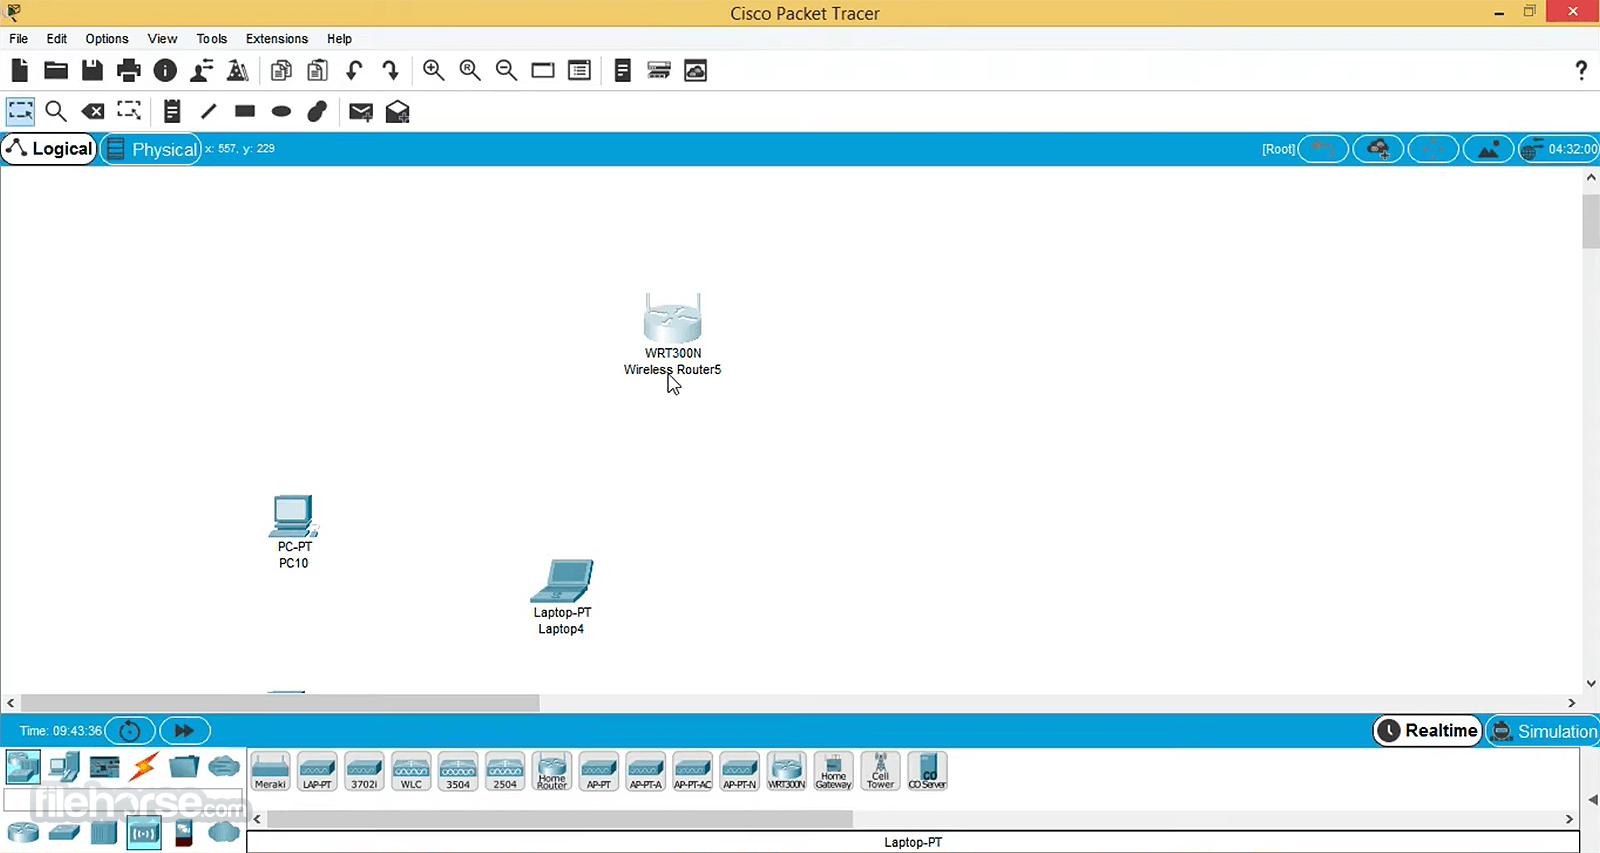 Cisco Packet Tracer 7.0 (64-bit) Captura de Pantalla 1